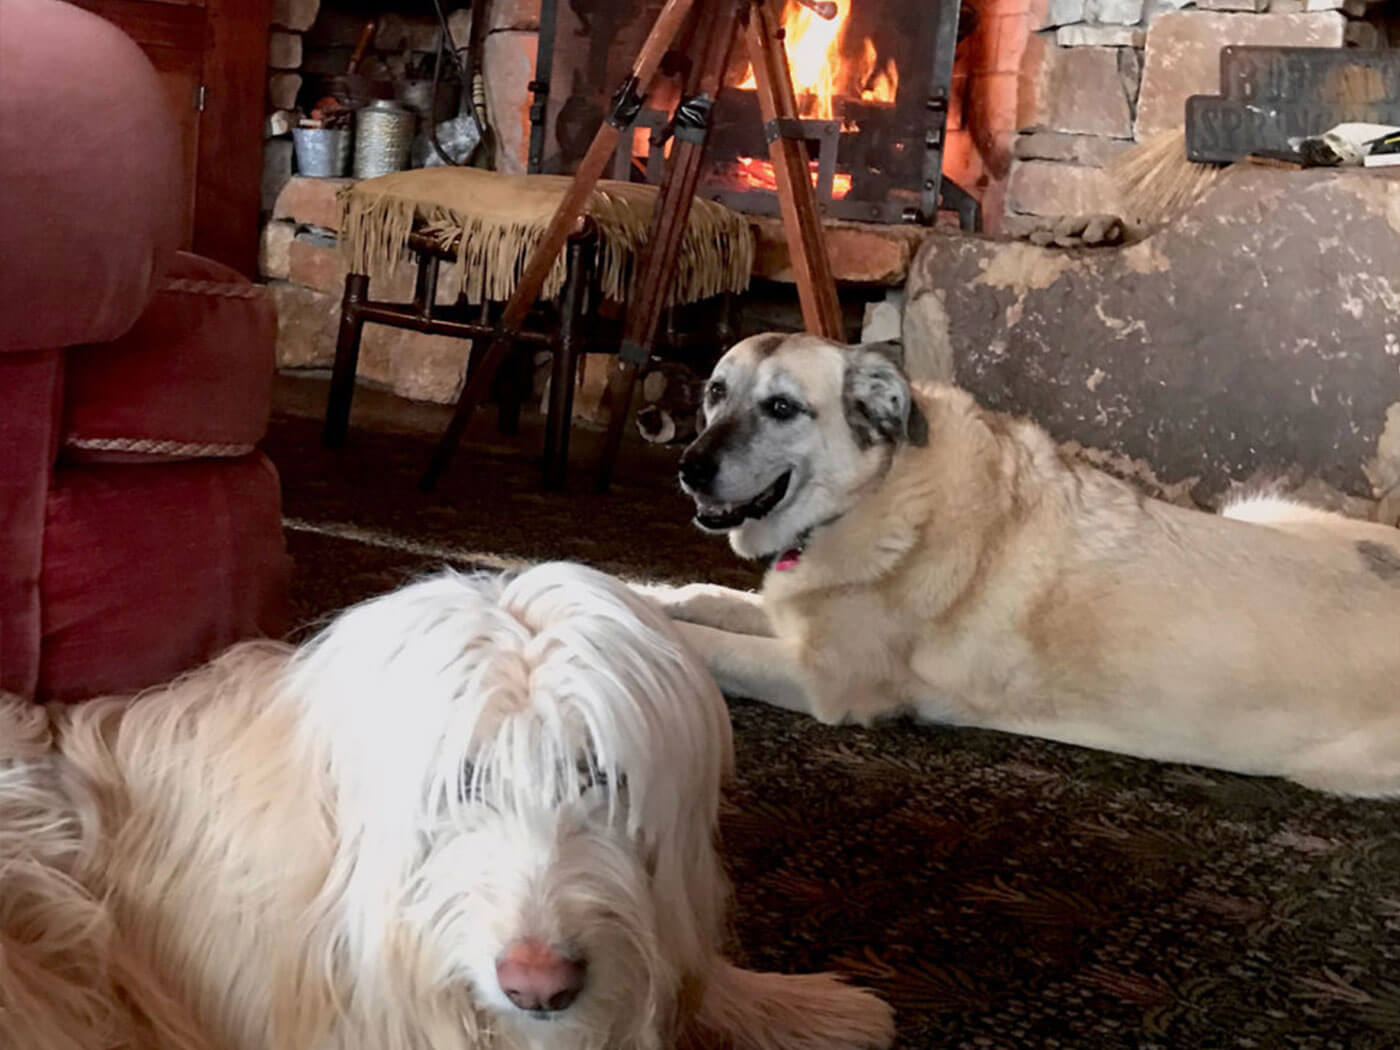 Neil Young's Fireside (and dogs)